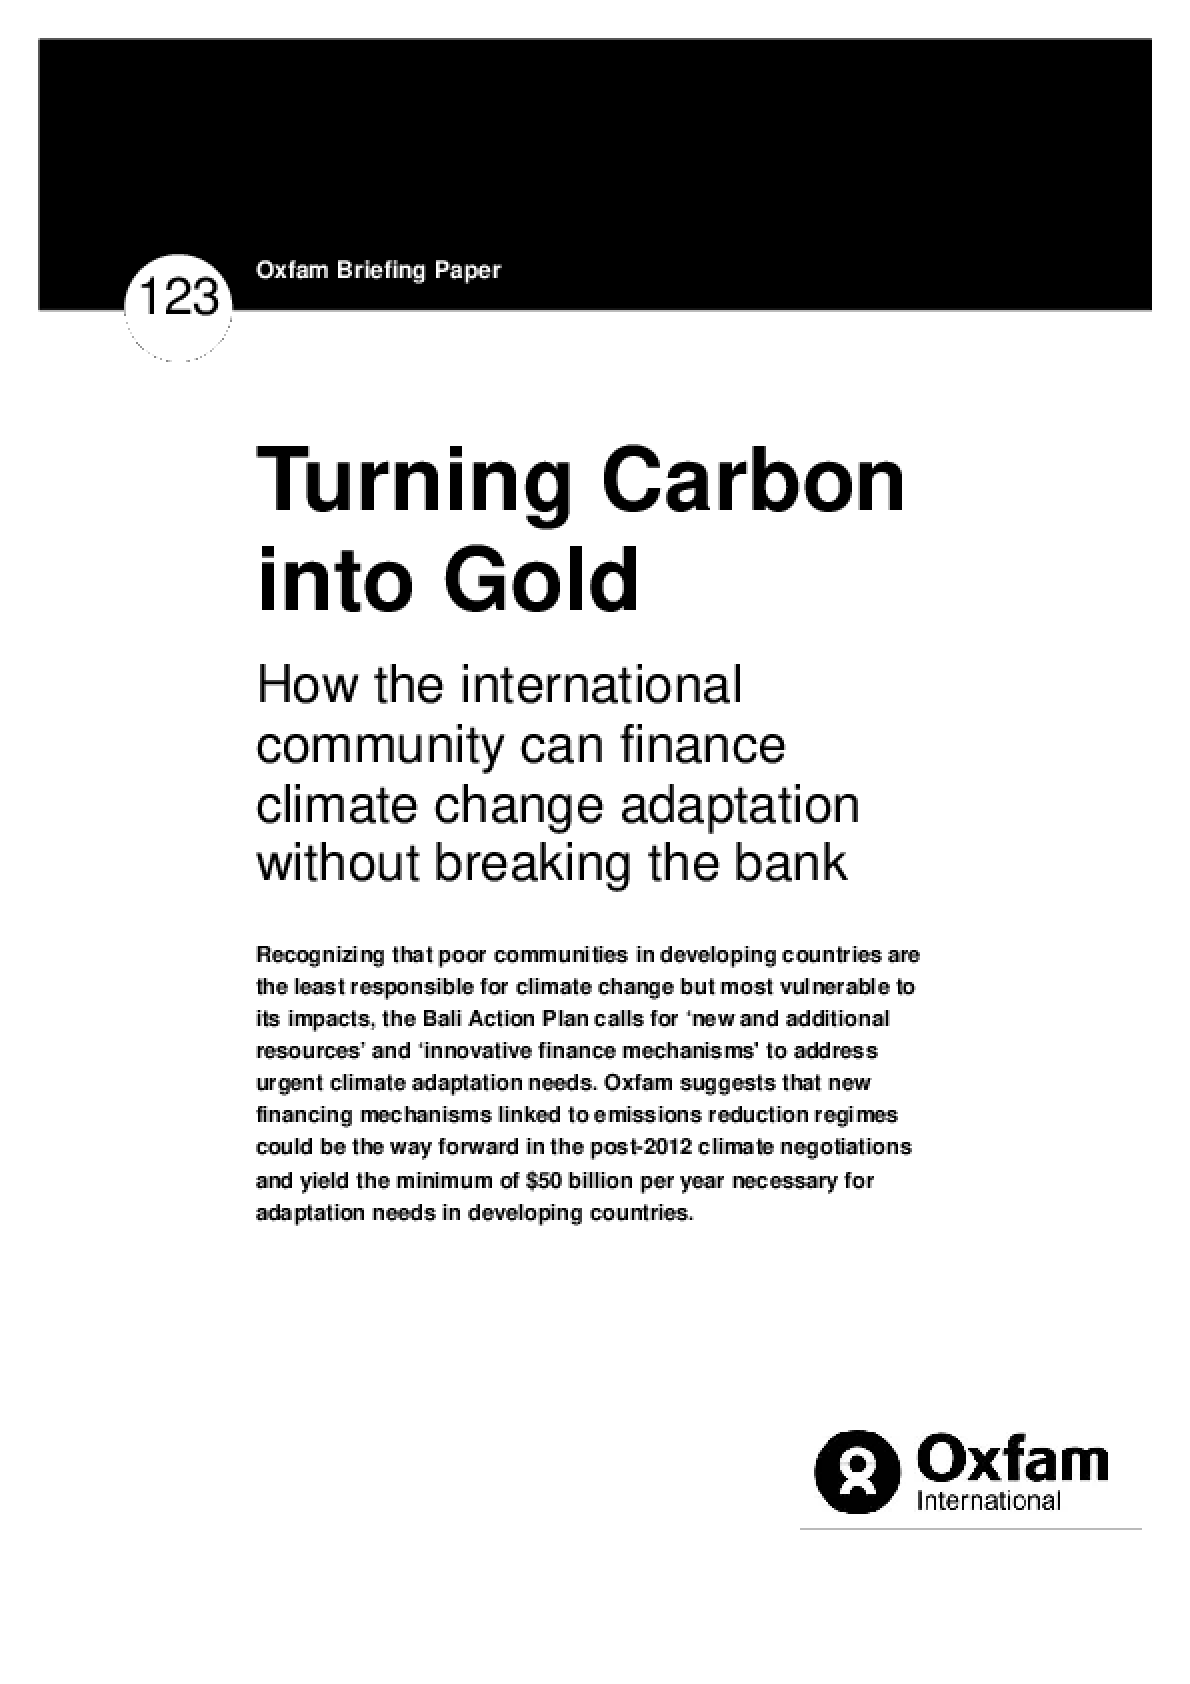 Turning Carbon into Gold: How the international community can finance climate change adaptation without breaking the bank